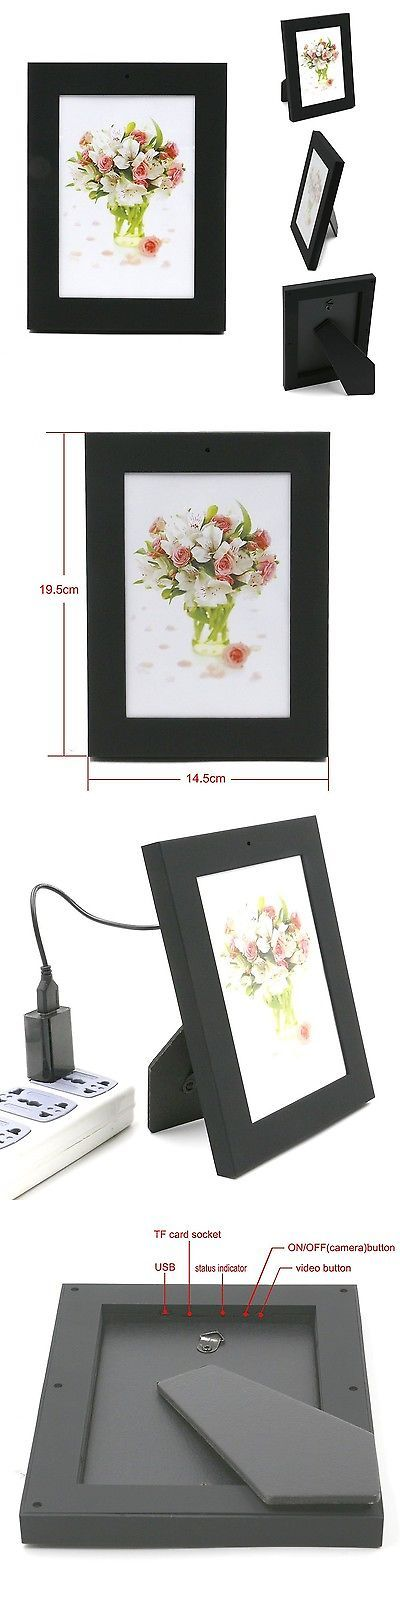 Surveillance Gadgets: Picture Frame Hidden Nanny Spy Hd Video Camera / Microphone With Motion D... New BUY IT NOW ONLY: $31.51